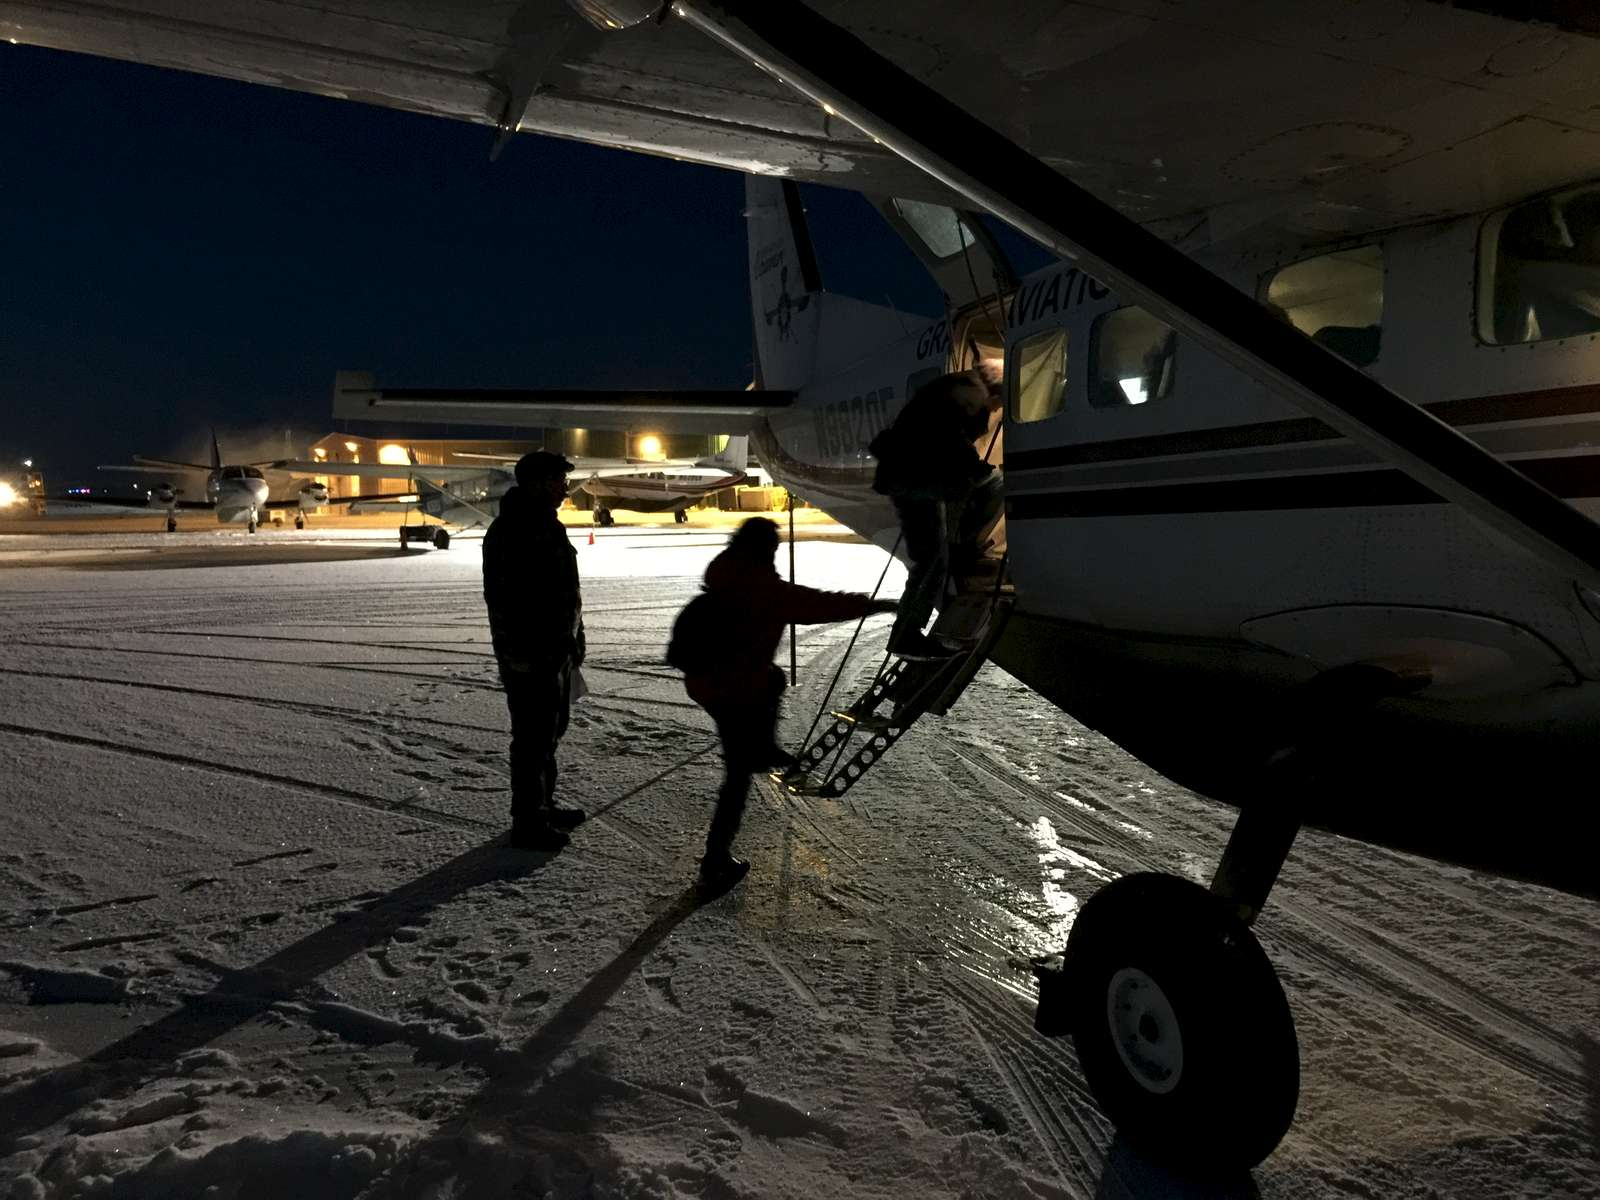 Members of the Calricaraq trauma response team board a 9 person plane to visit a family in the village.